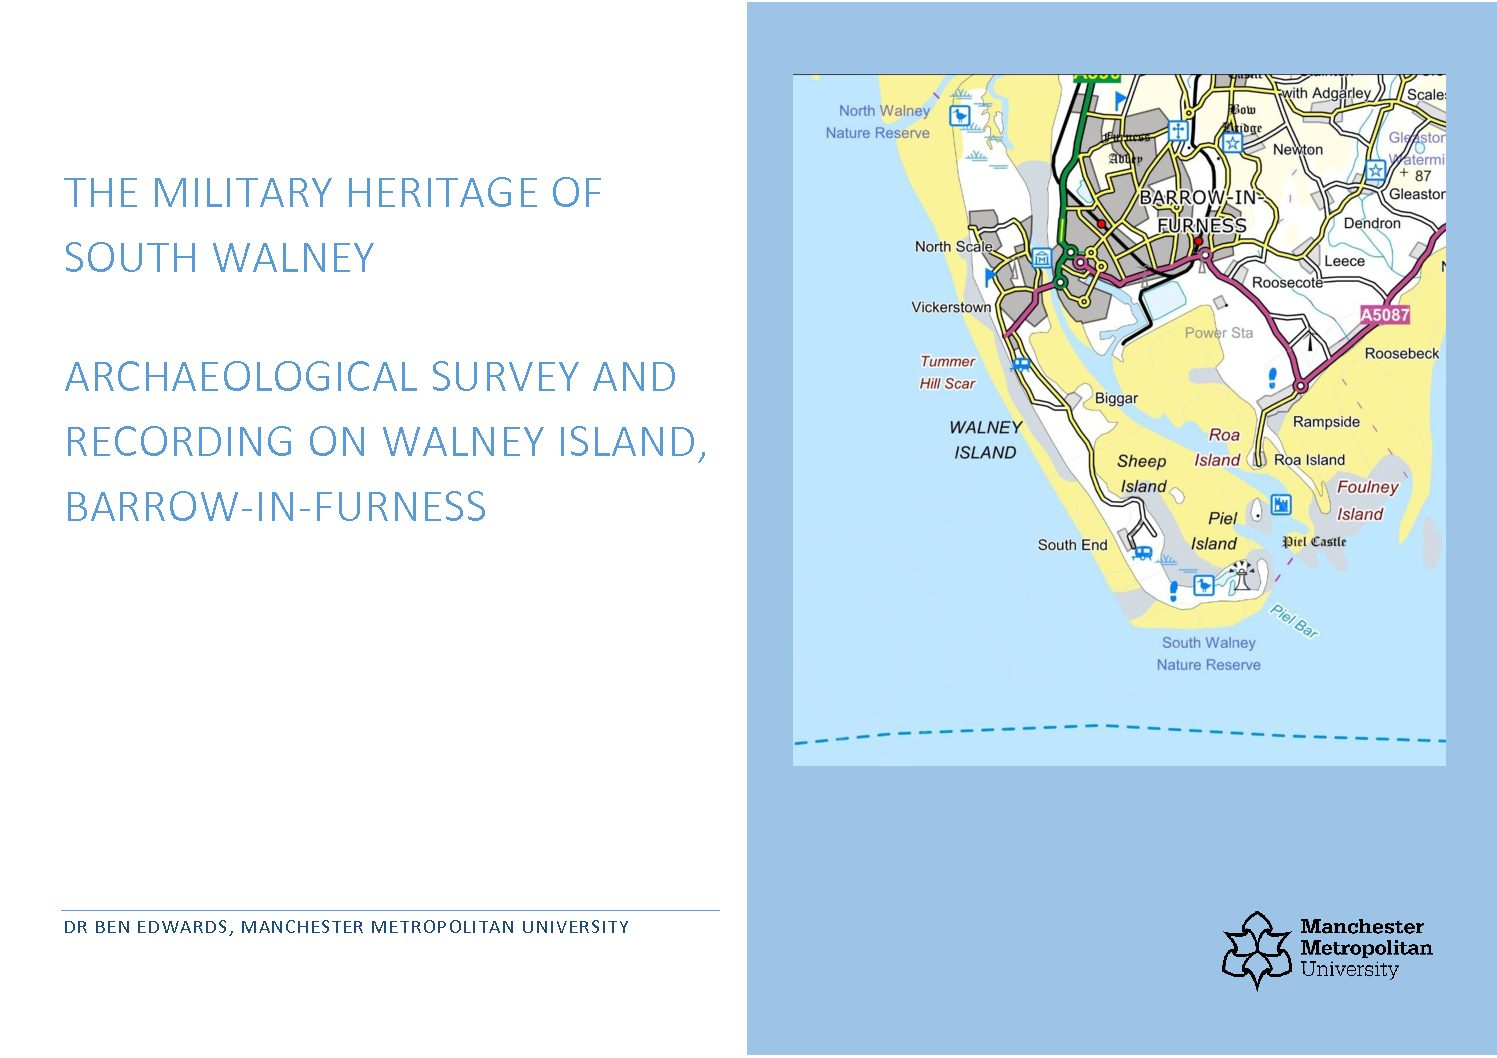 The Military Heritage Of South Walney - Archaeological Survey And Recording on Walney Island, Barrow-In-Furness